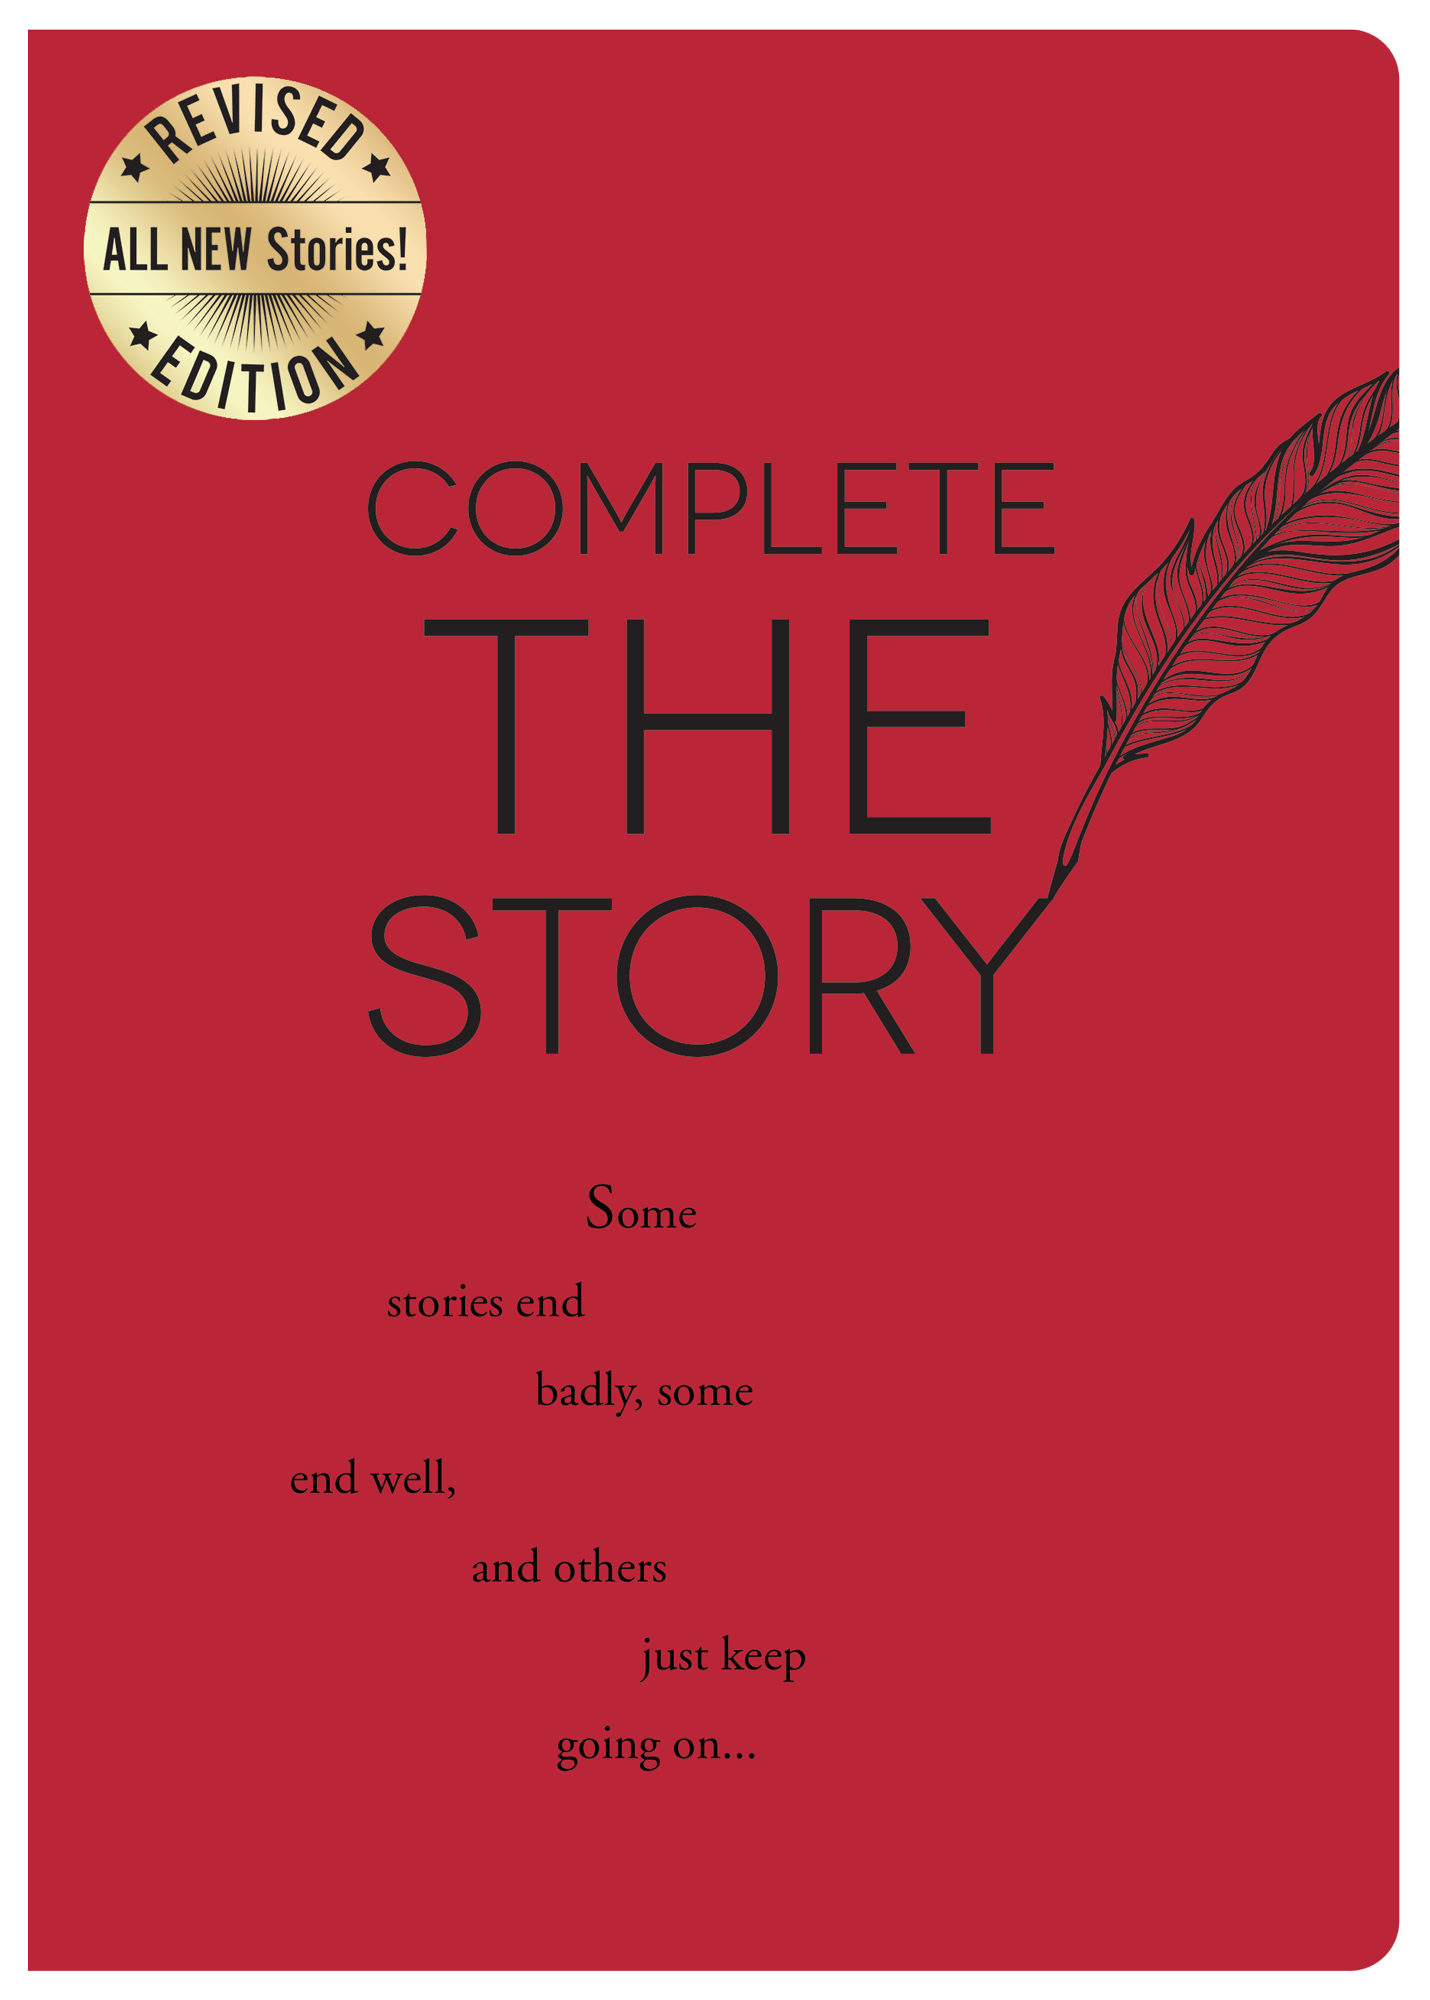 Complete-The-Story-Cover